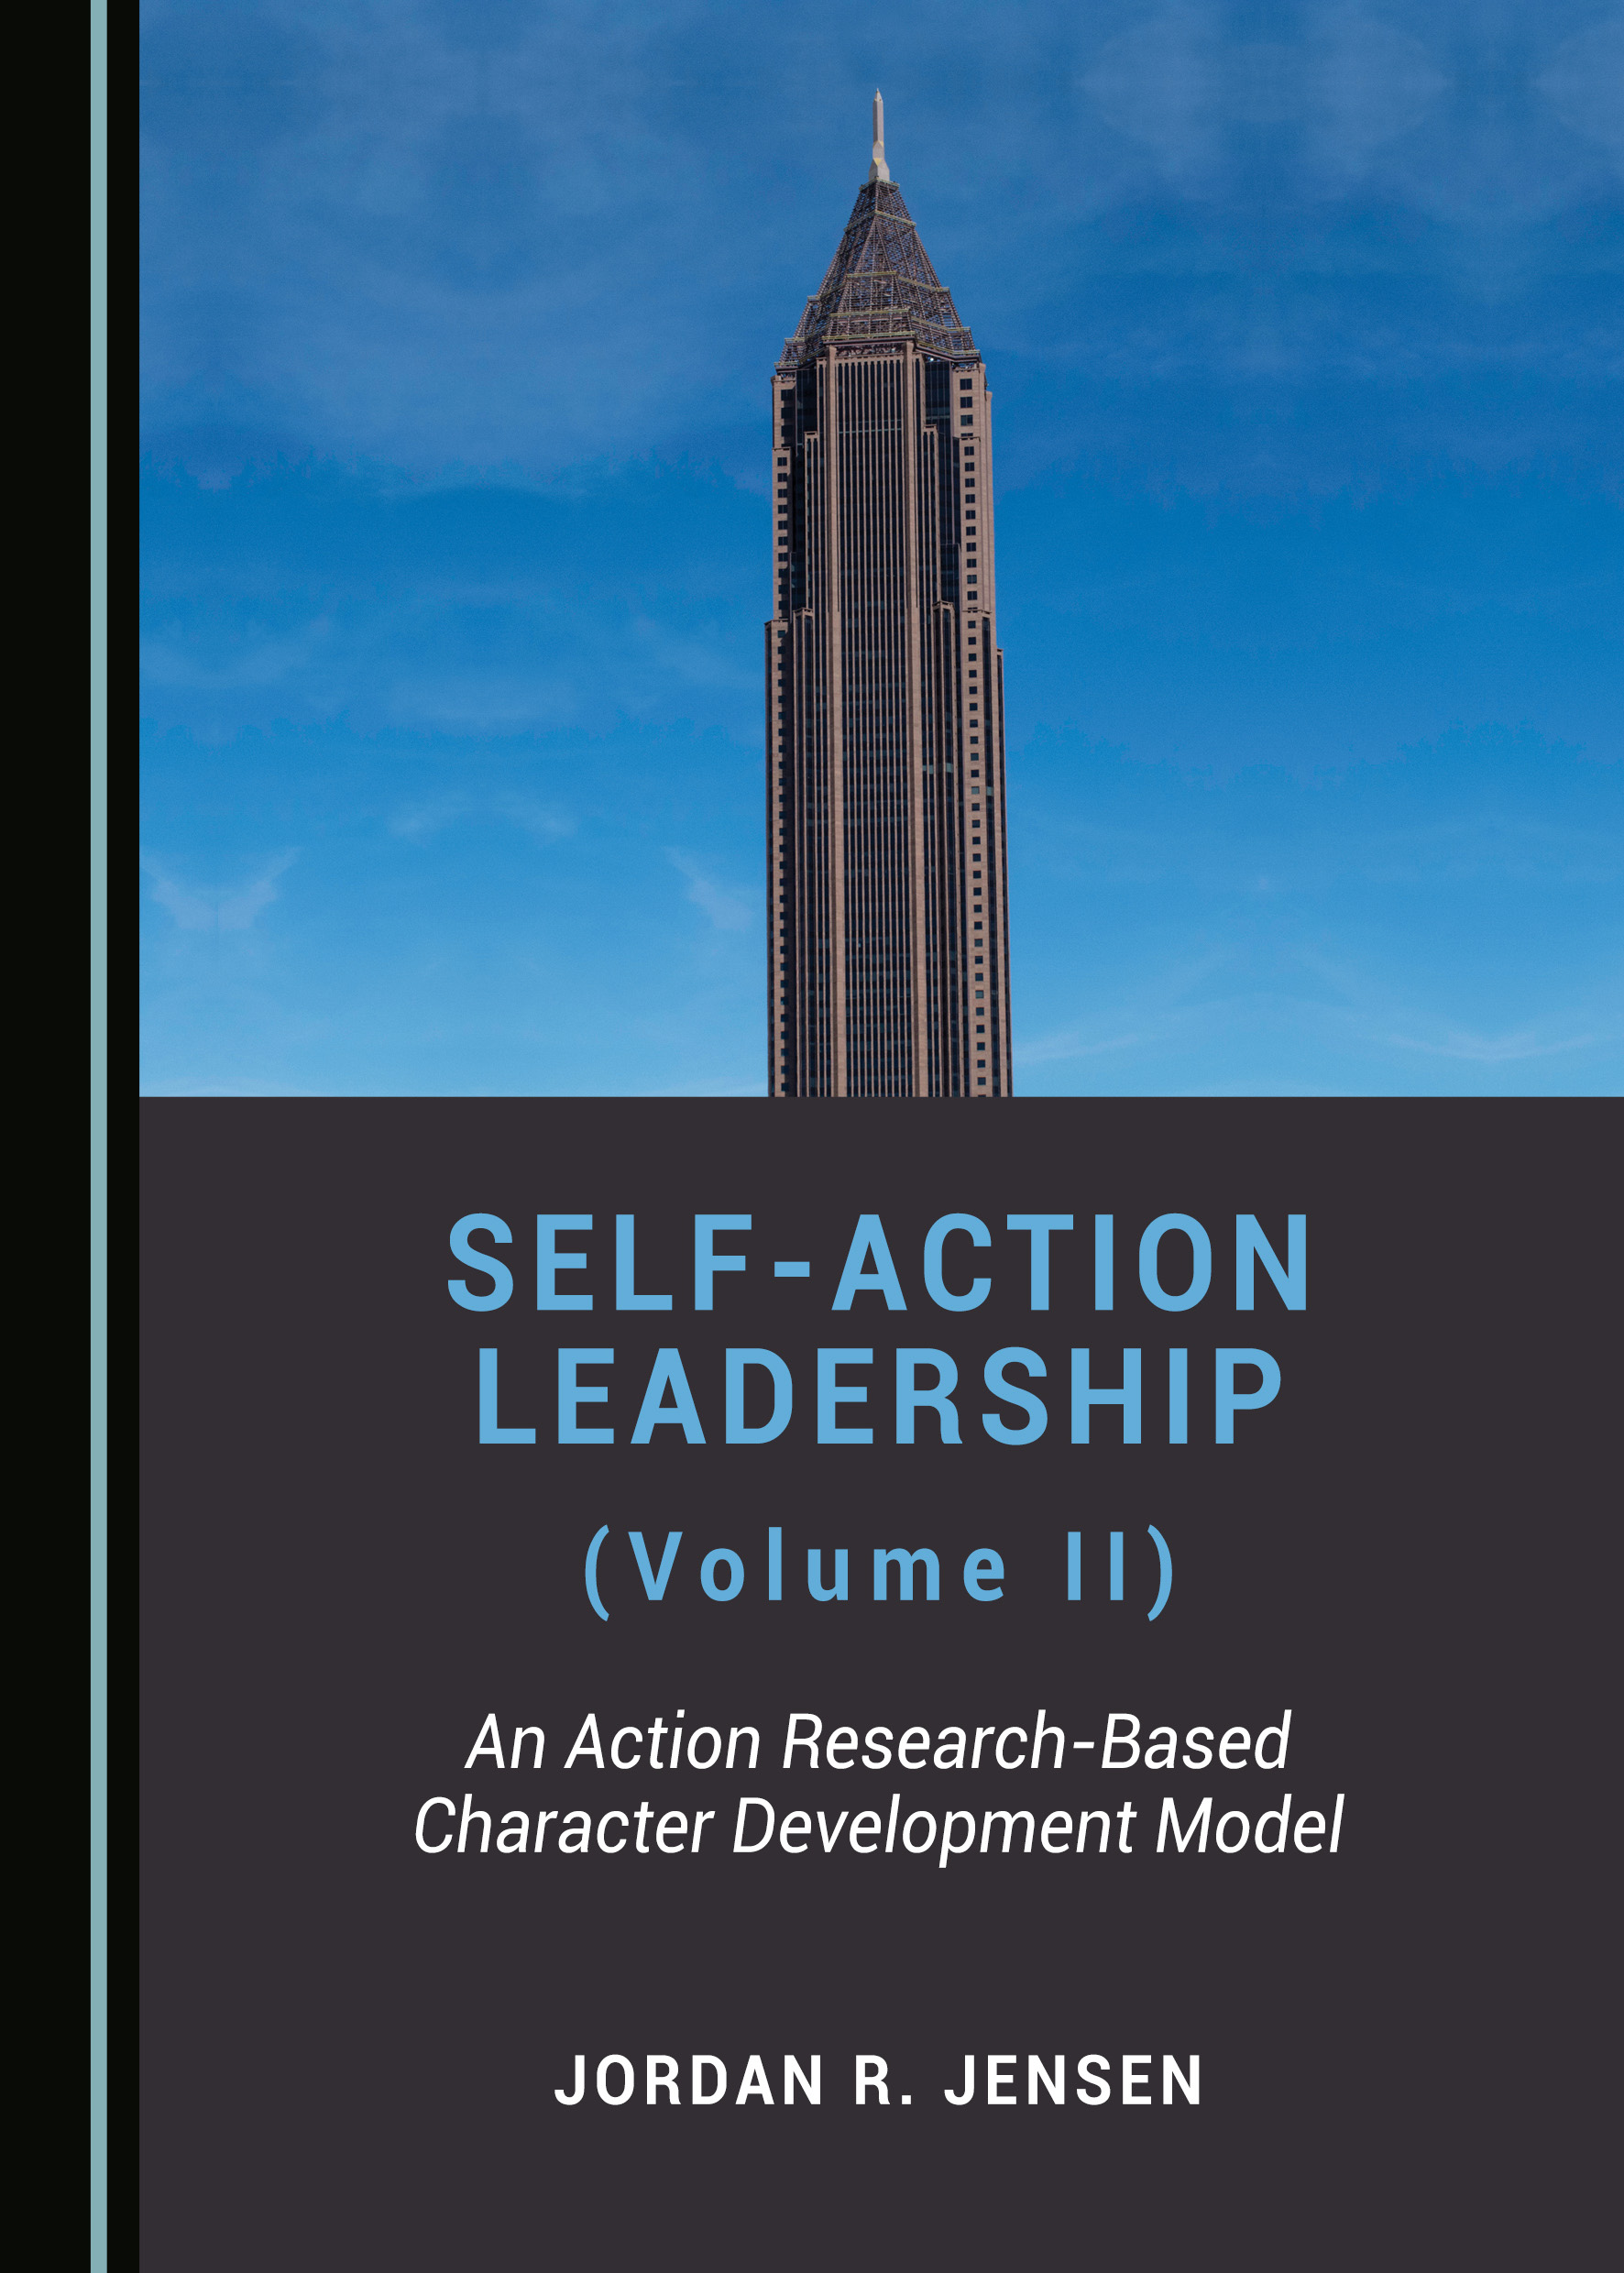 Self-Action Leadership (Volume II): An Action Research-Based Character Development Model